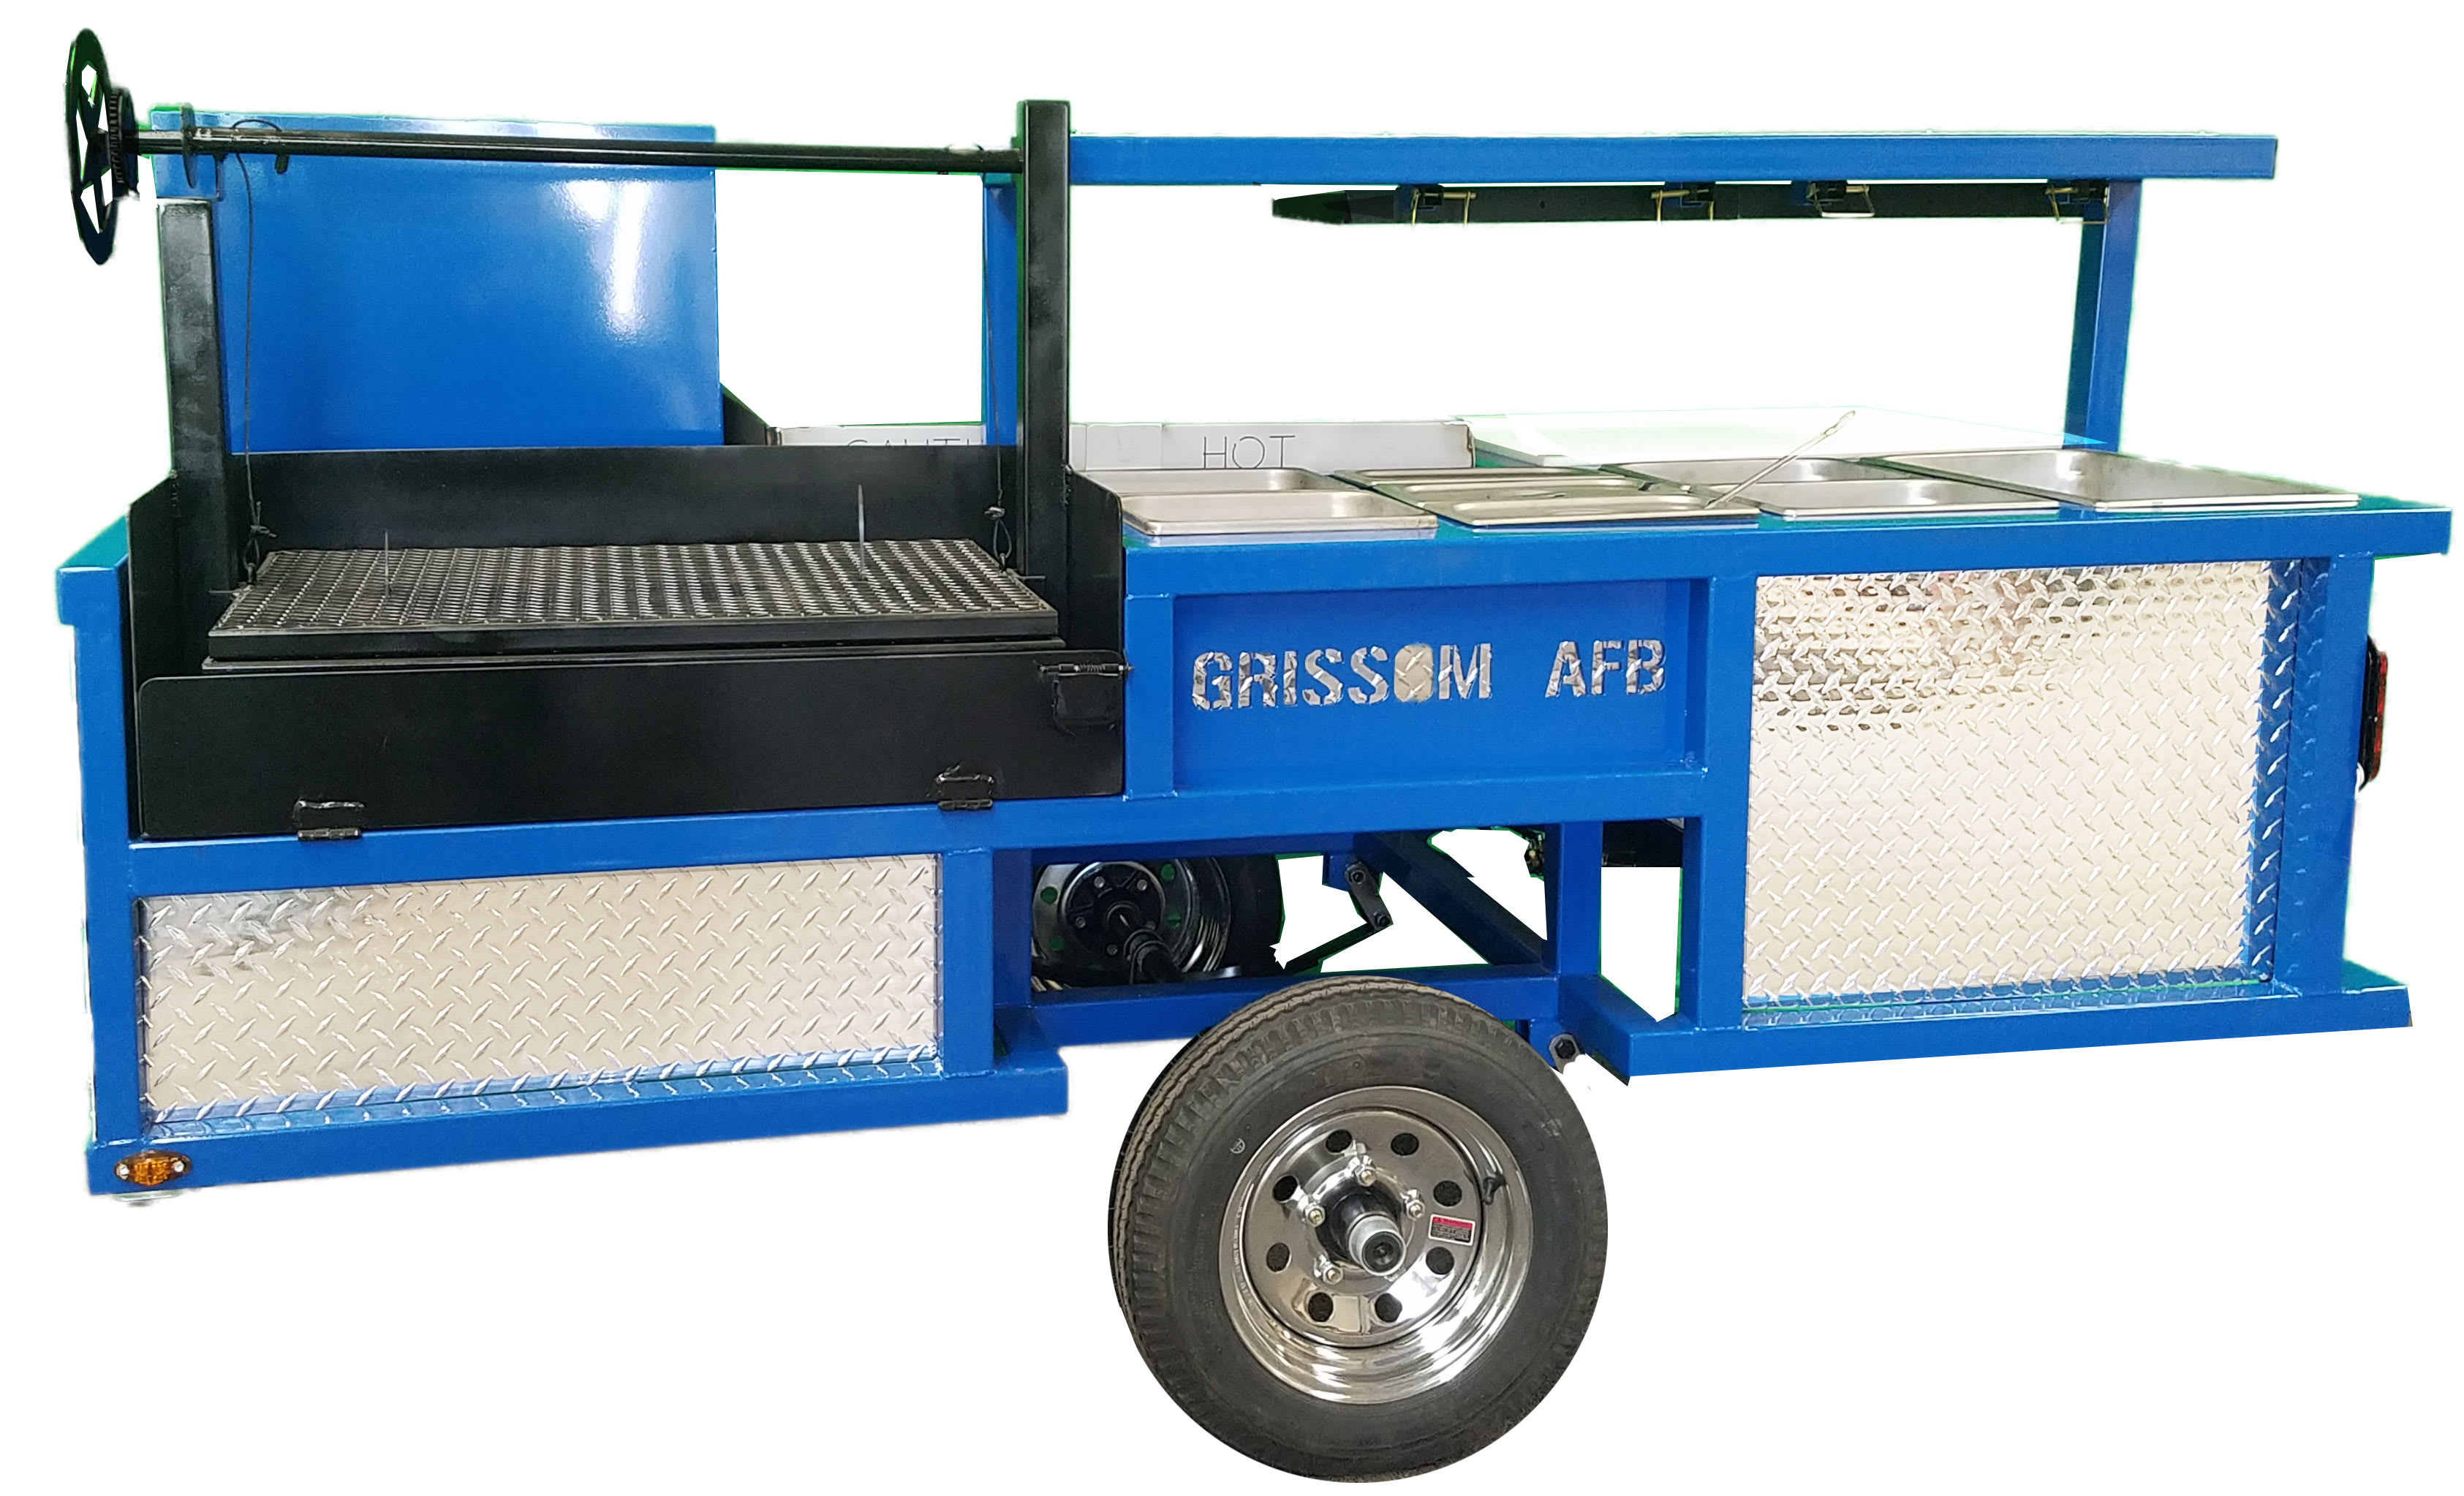 OMG Grills - Affordable Concession Trailers from Texas